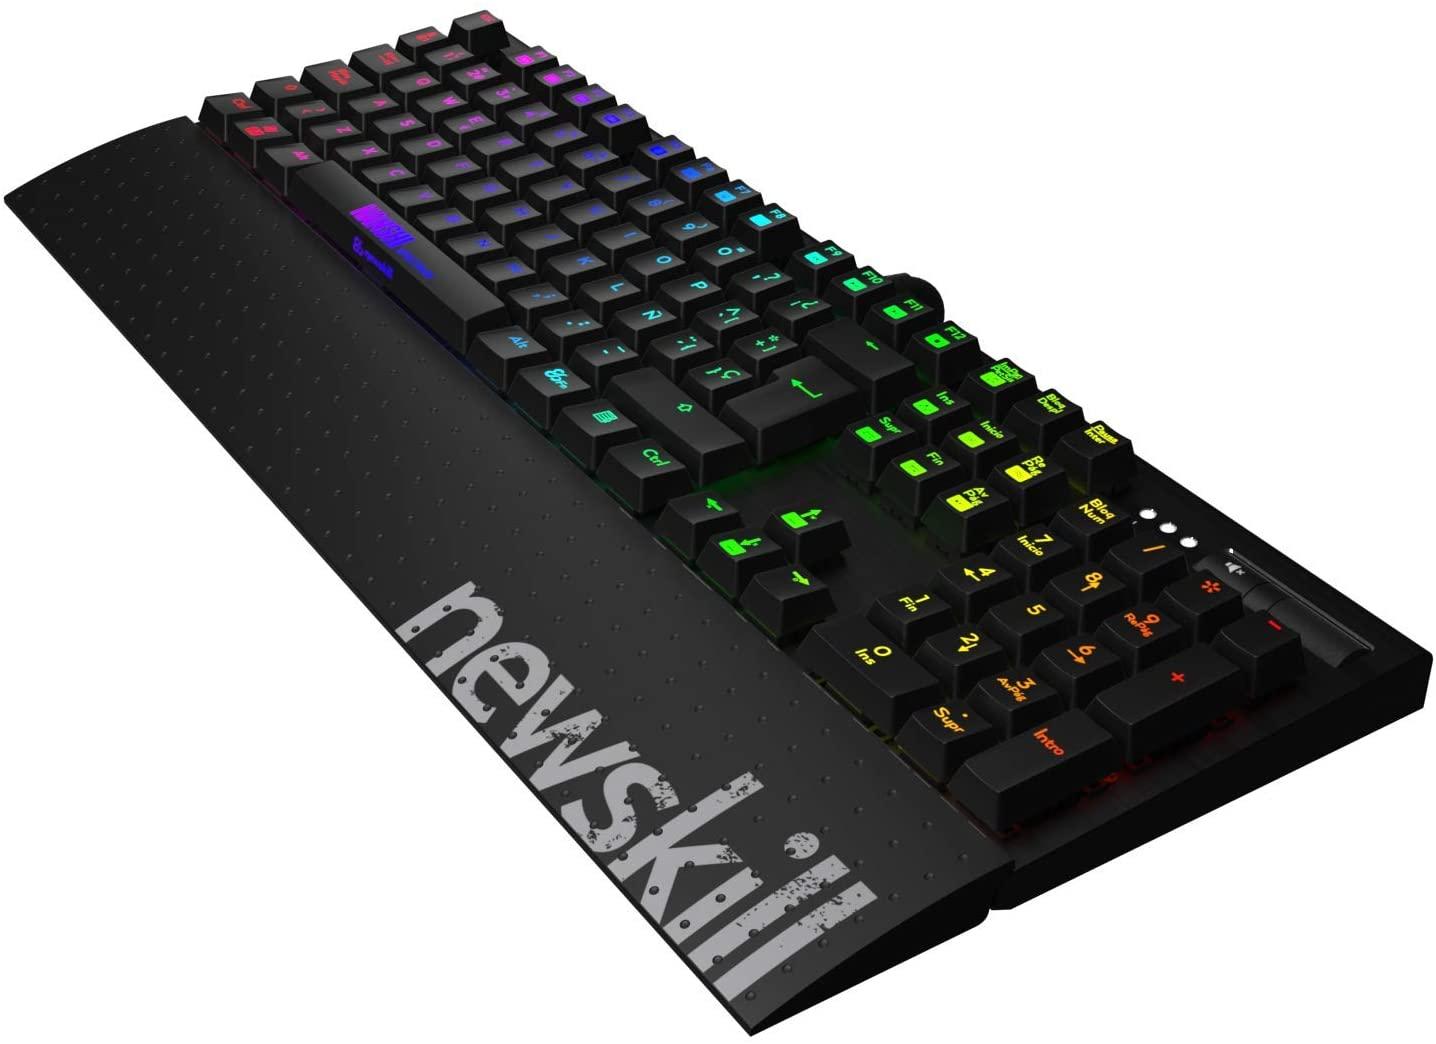 Teclado gaming Newskill Hanshi Spectrum